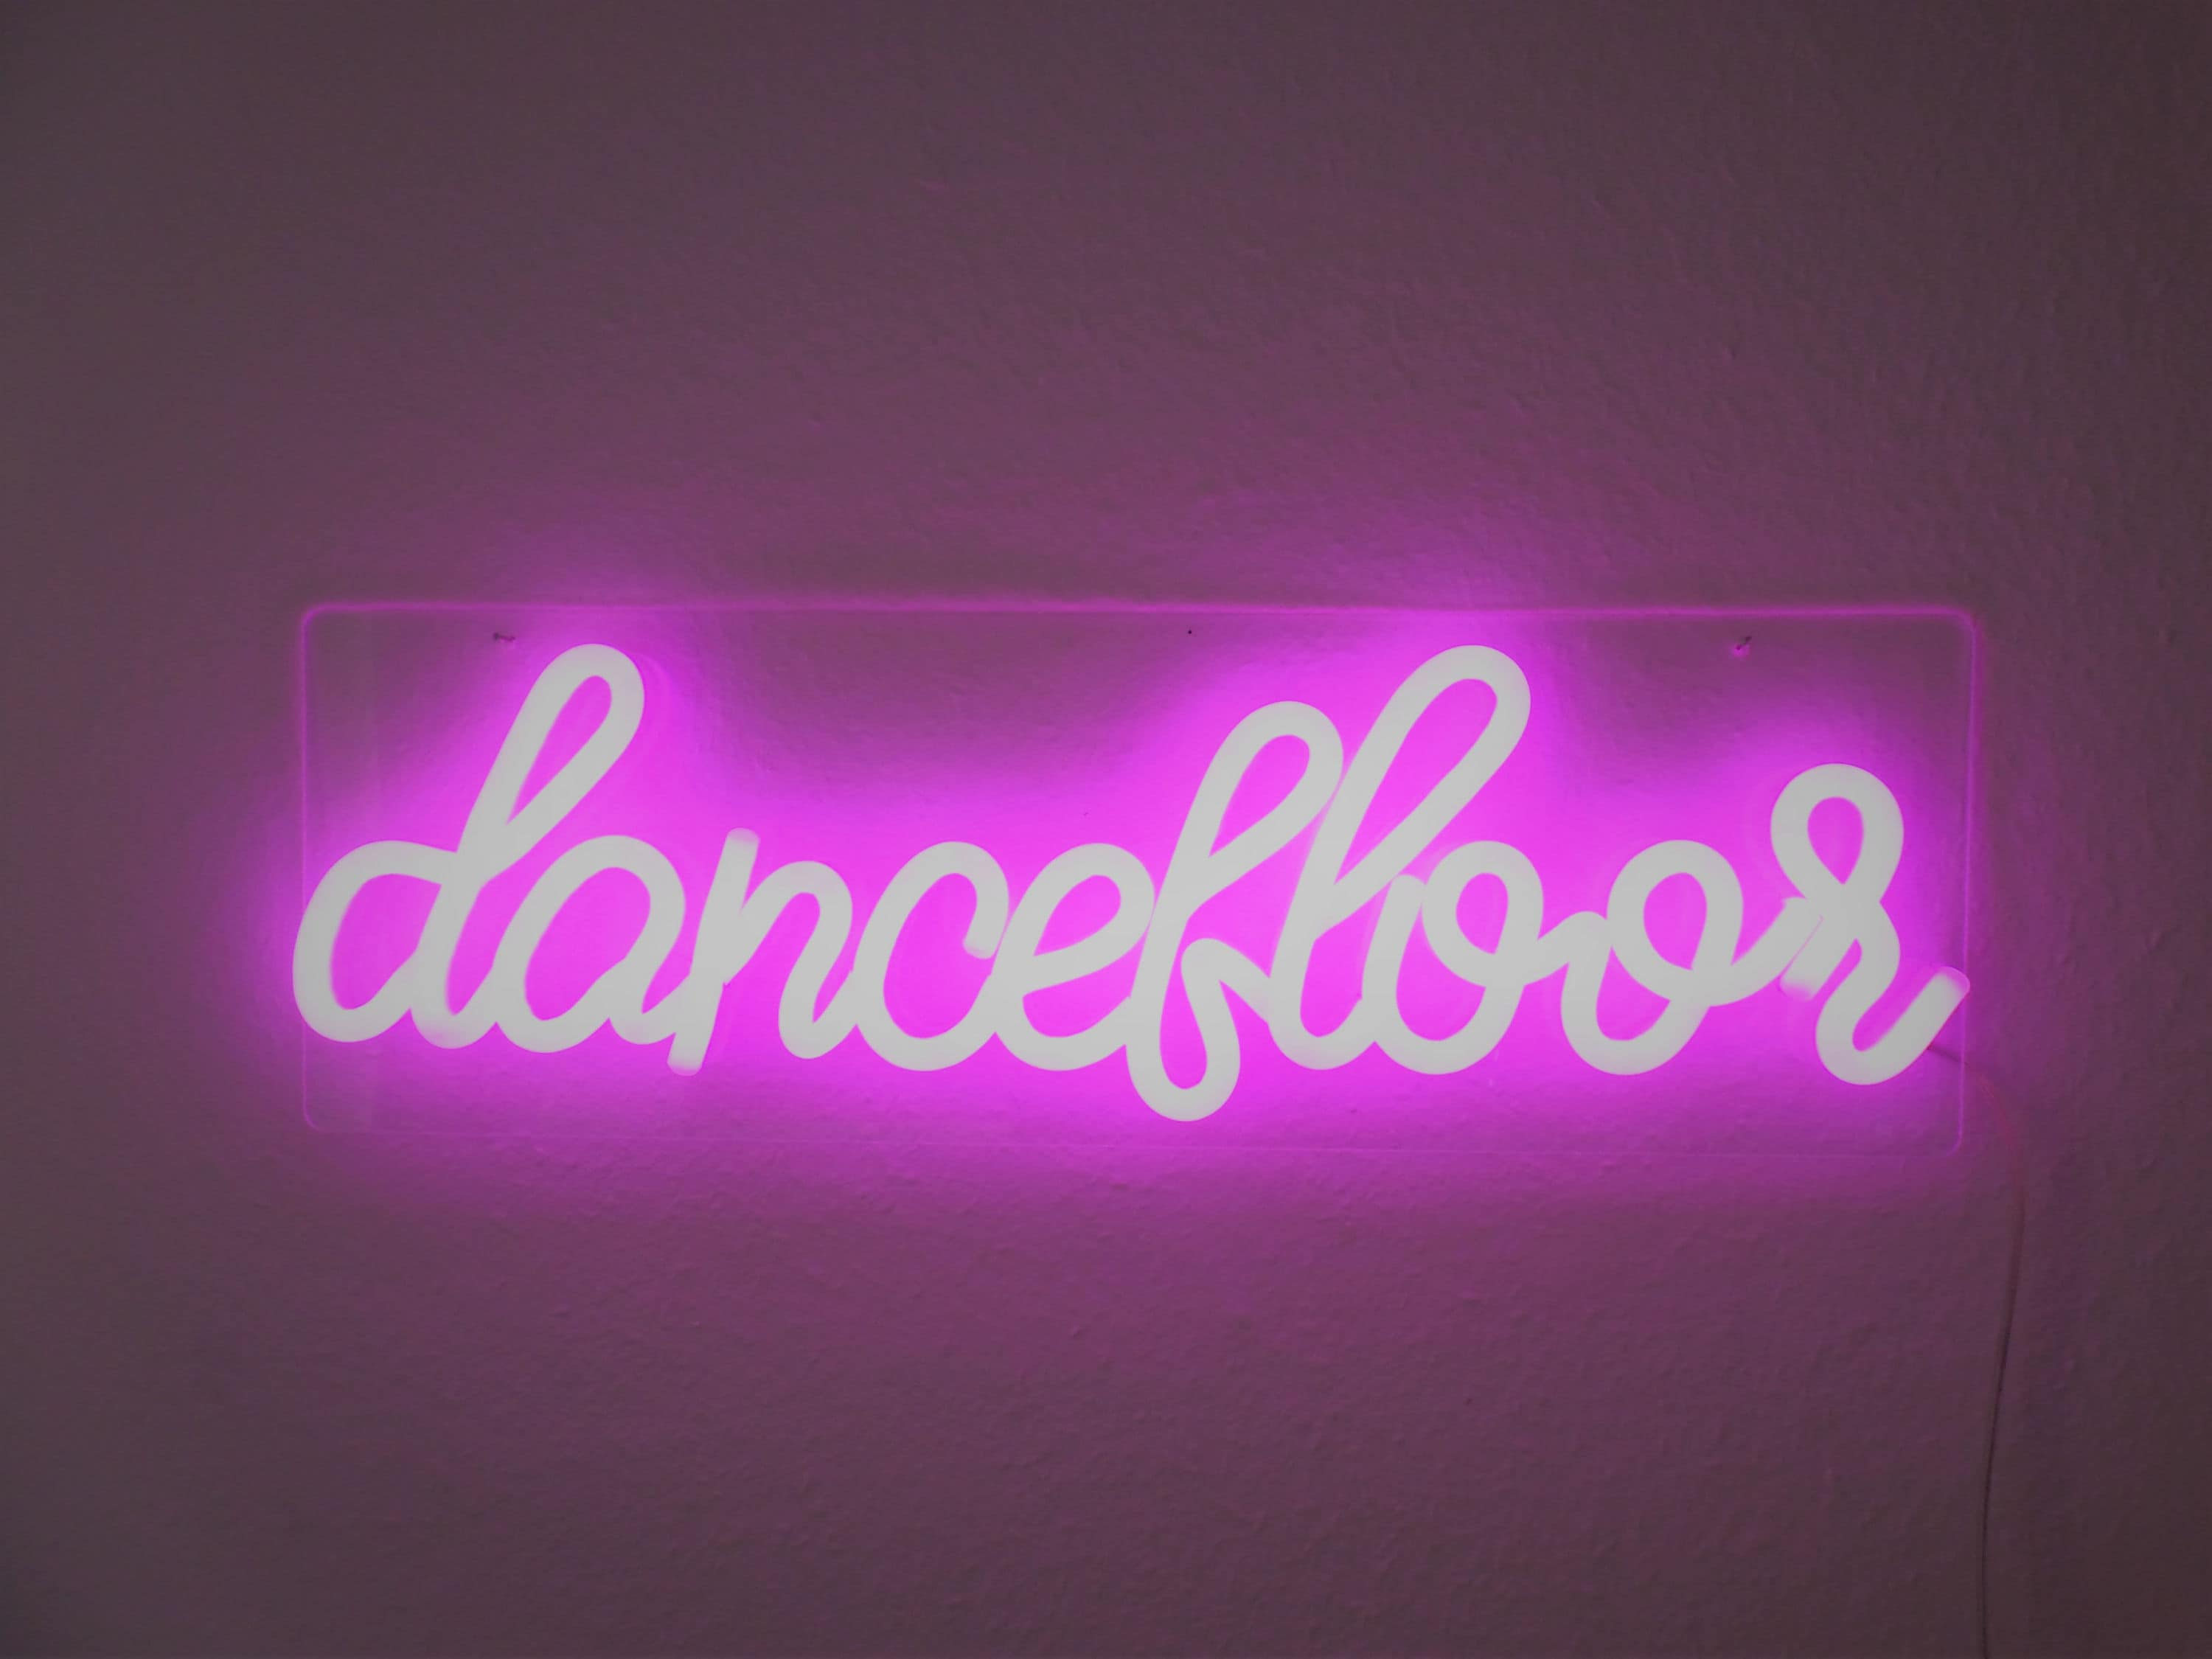 LED neon sign dancefloor pink